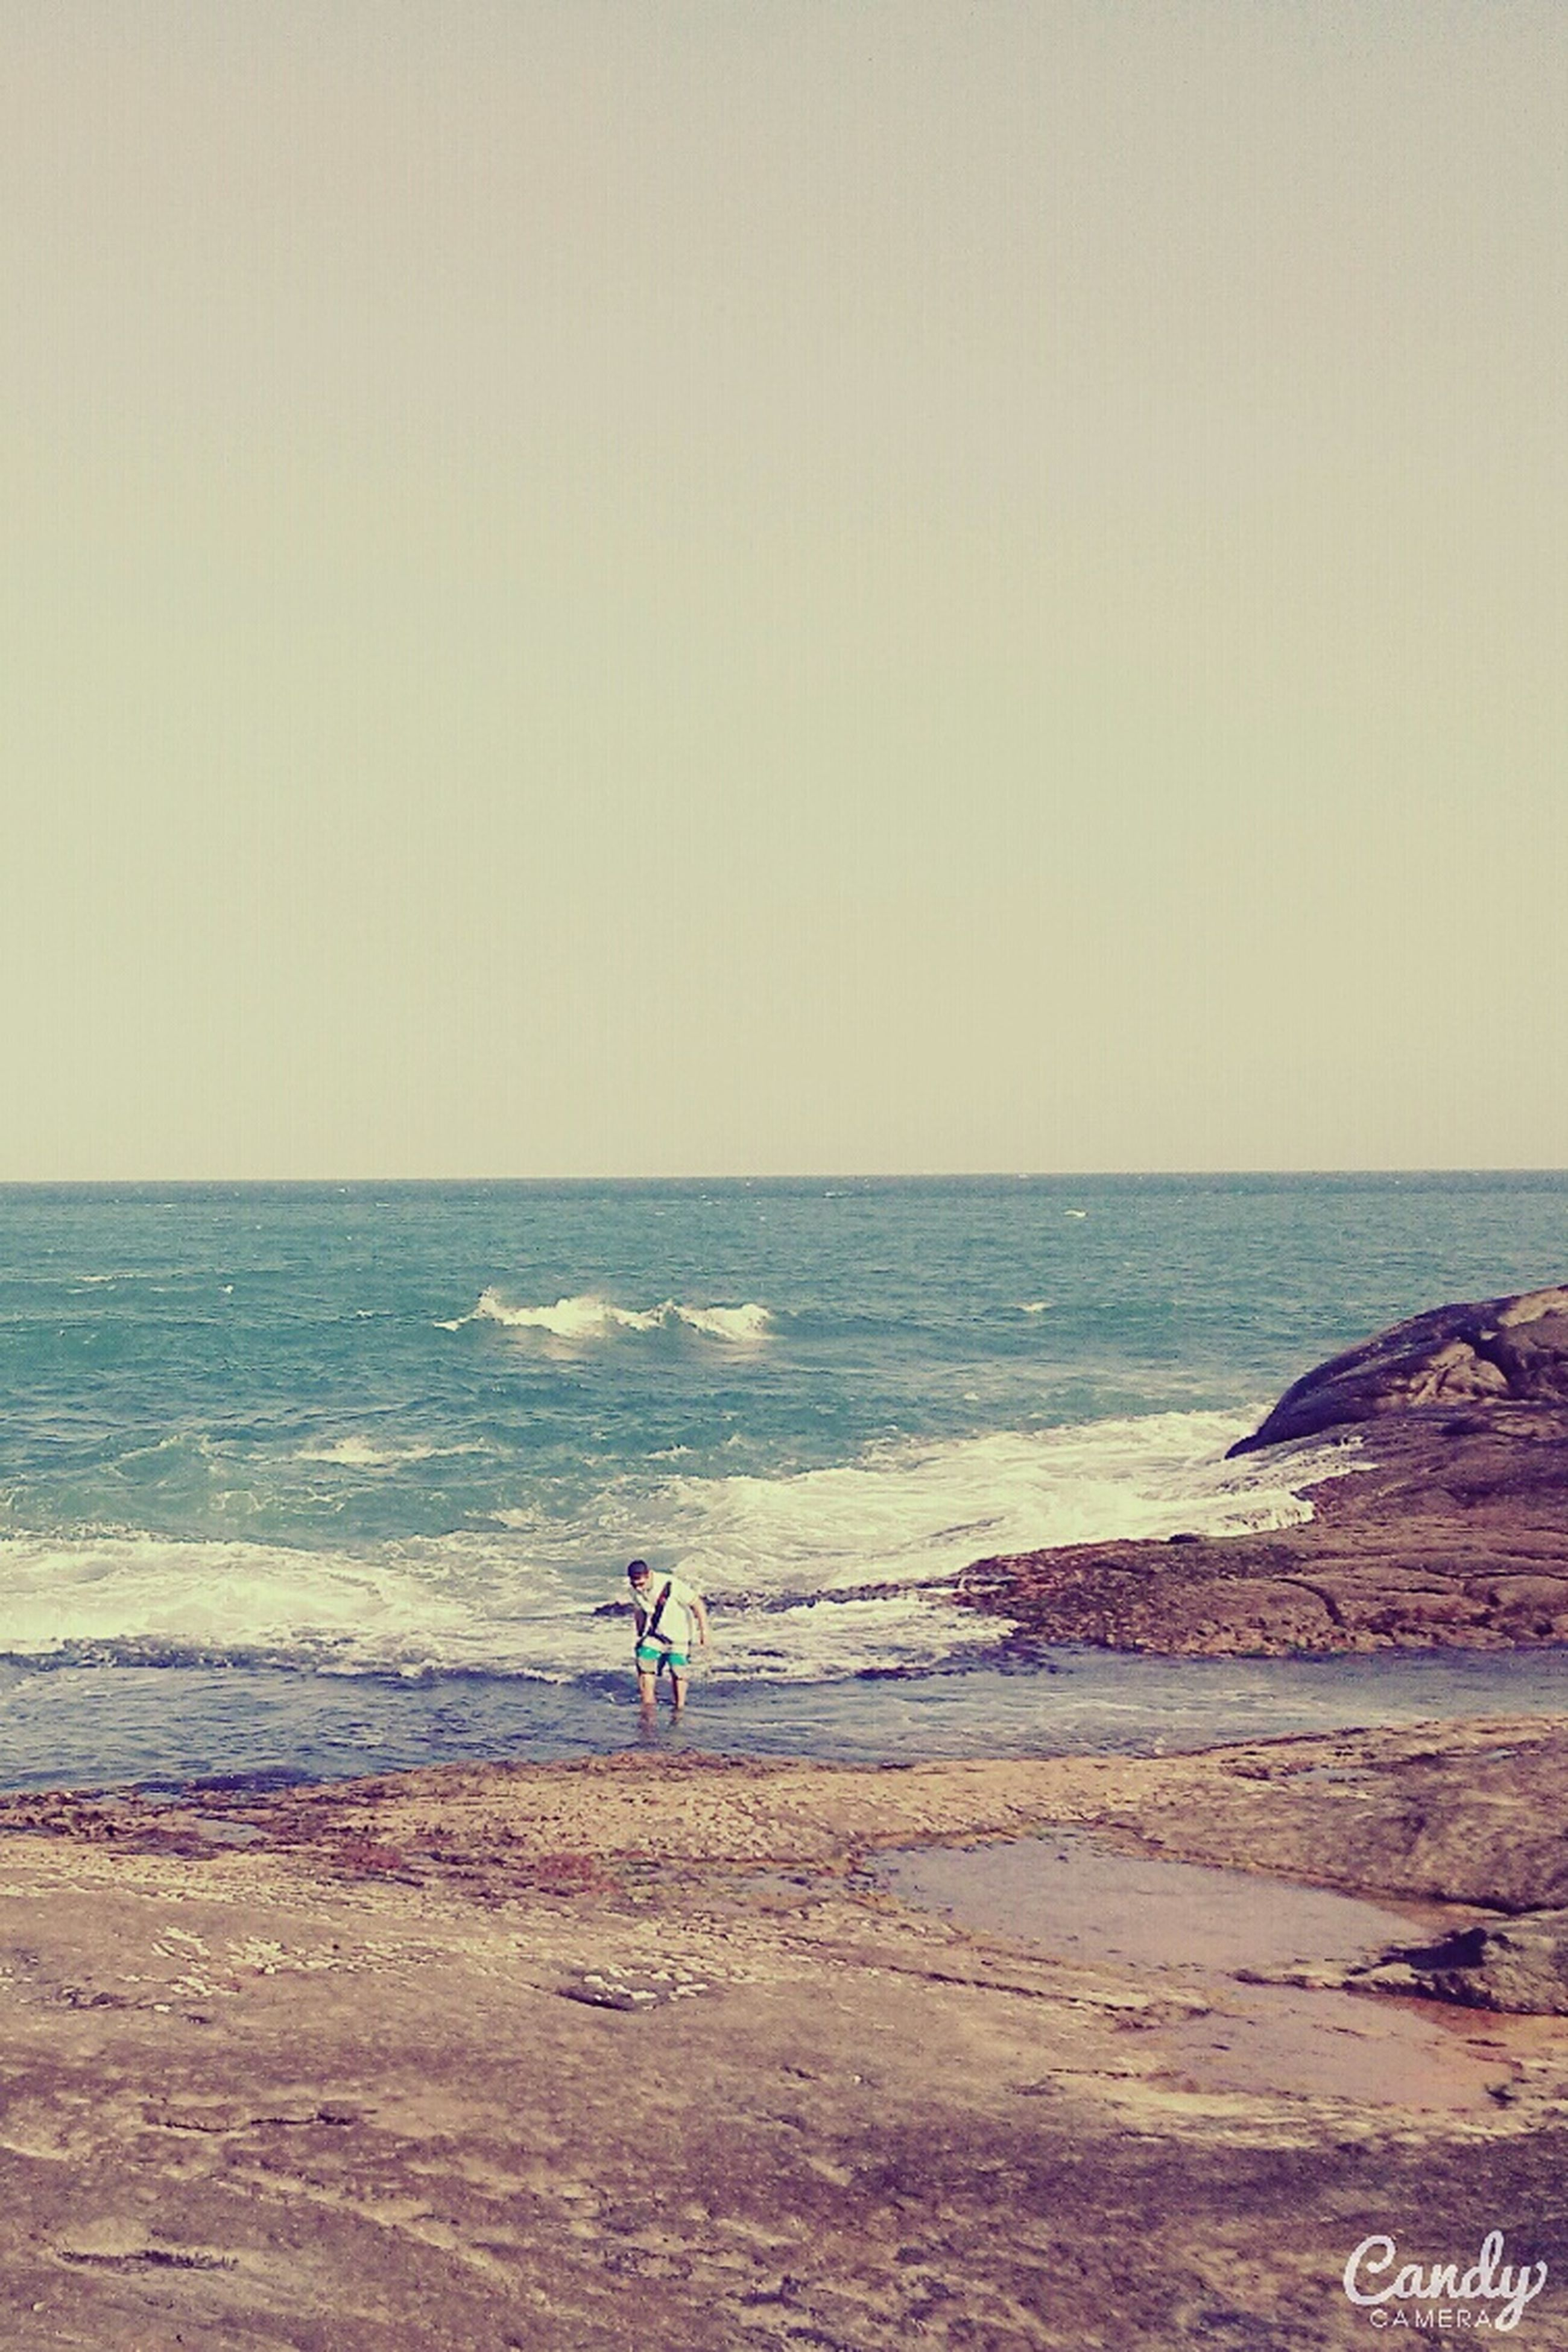 sea, beach, horizon over water, water, shore, clear sky, sand, copy space, tranquil scene, scenics, tranquility, beauty in nature, nature, wave, idyllic, coastline, remote, sky, outdoors, vacations